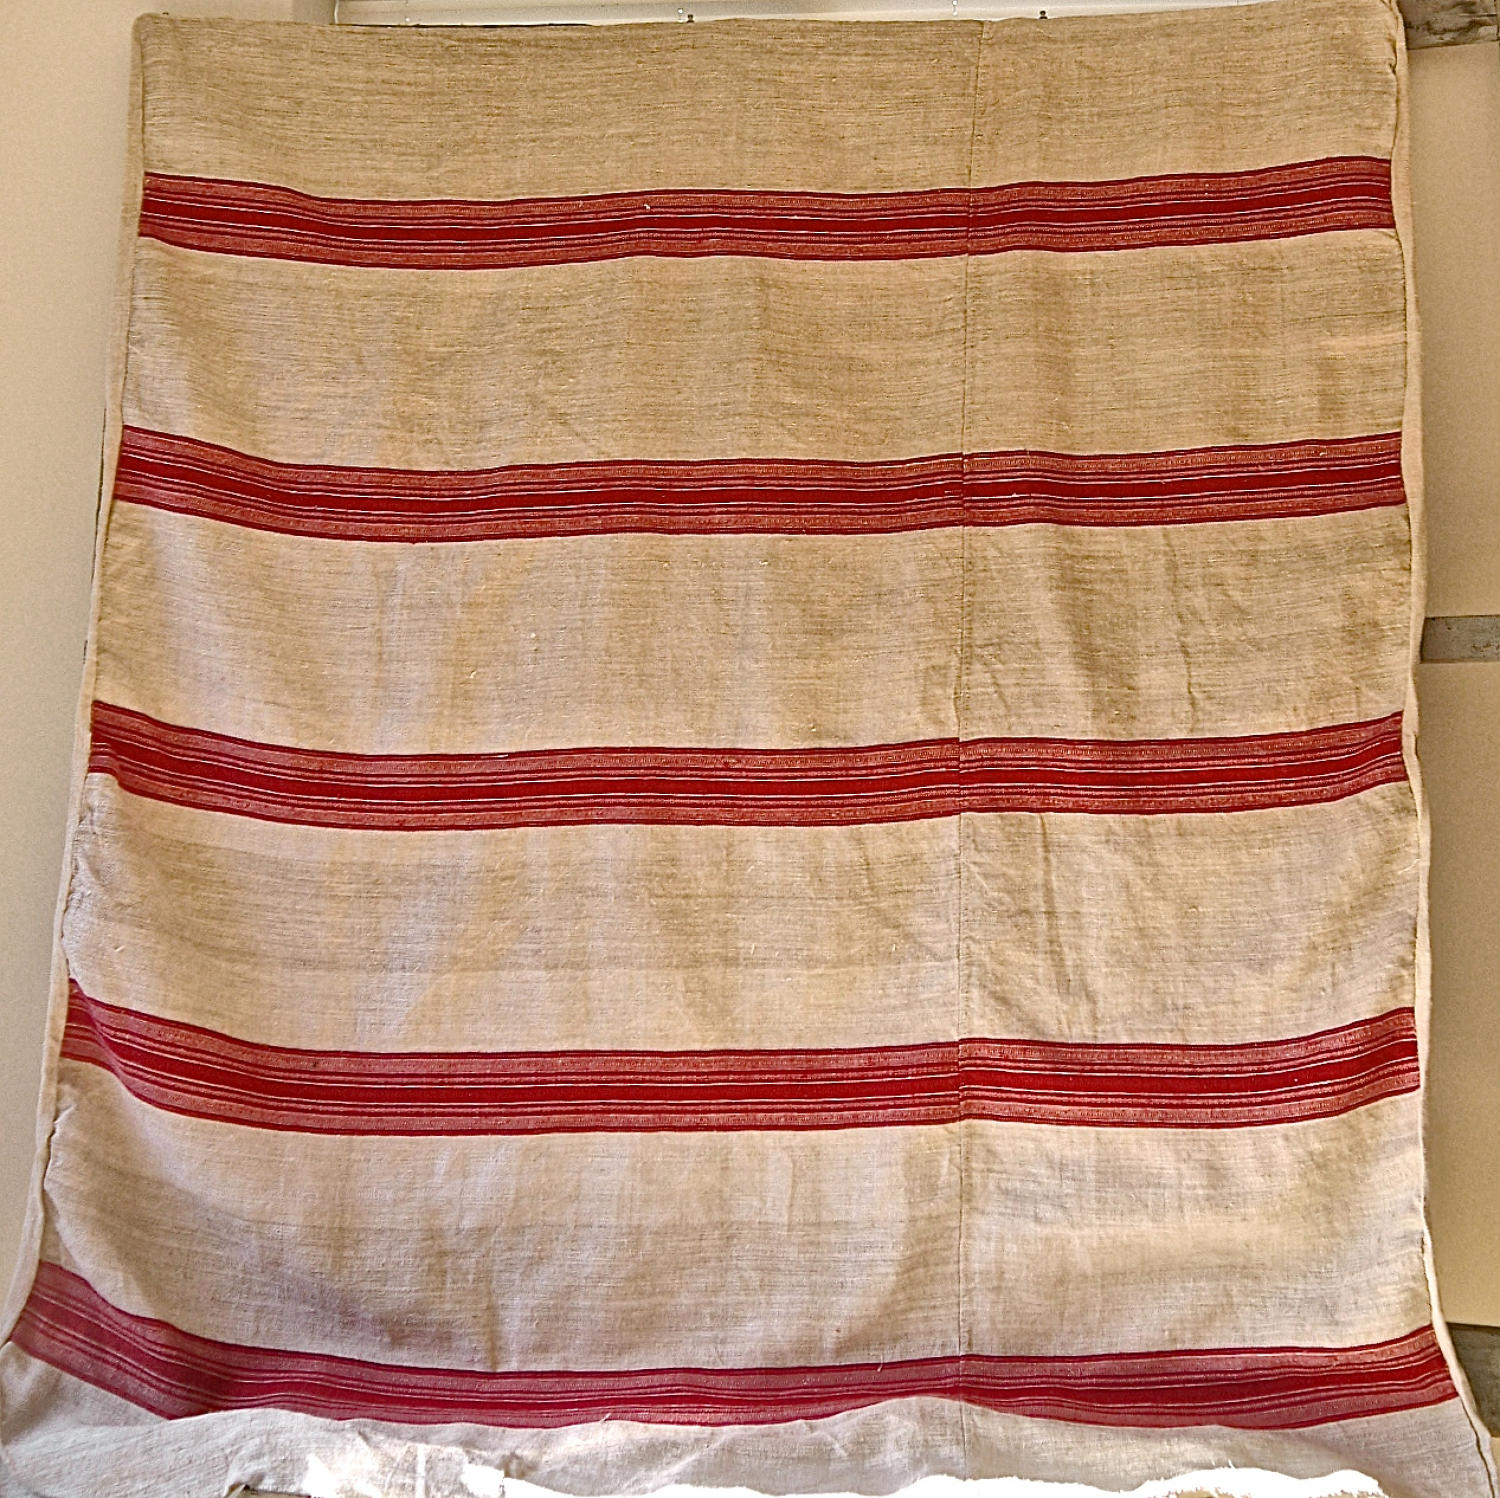 Red striped hemp cover French 19th century